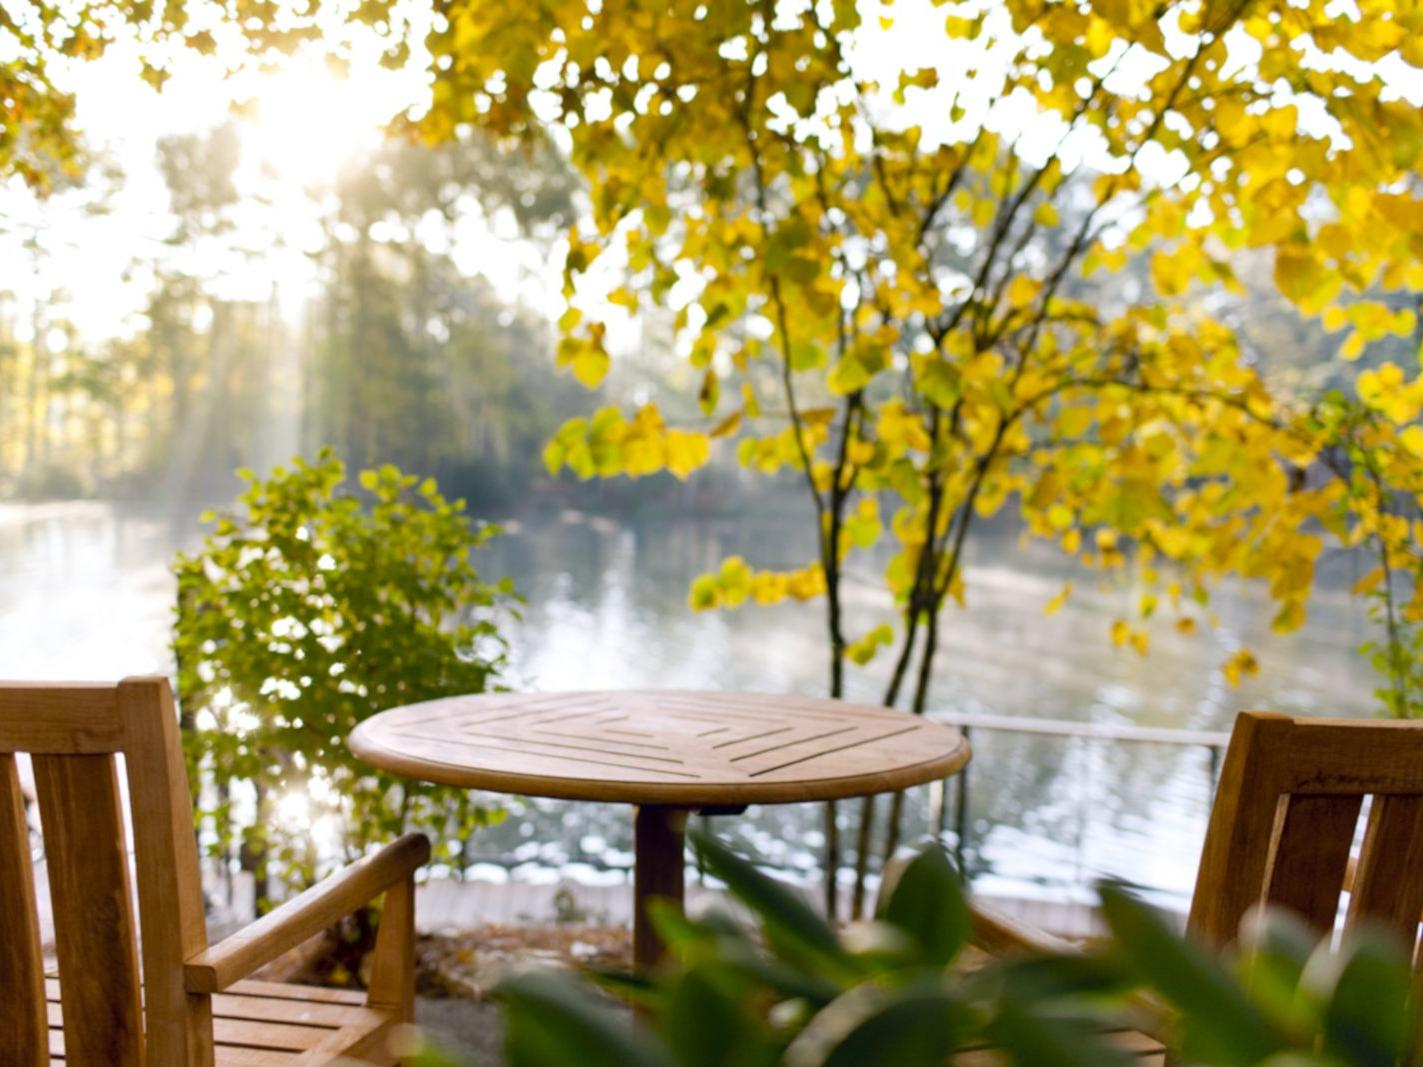 seats and table overlooking lake and tree with yellow leaves